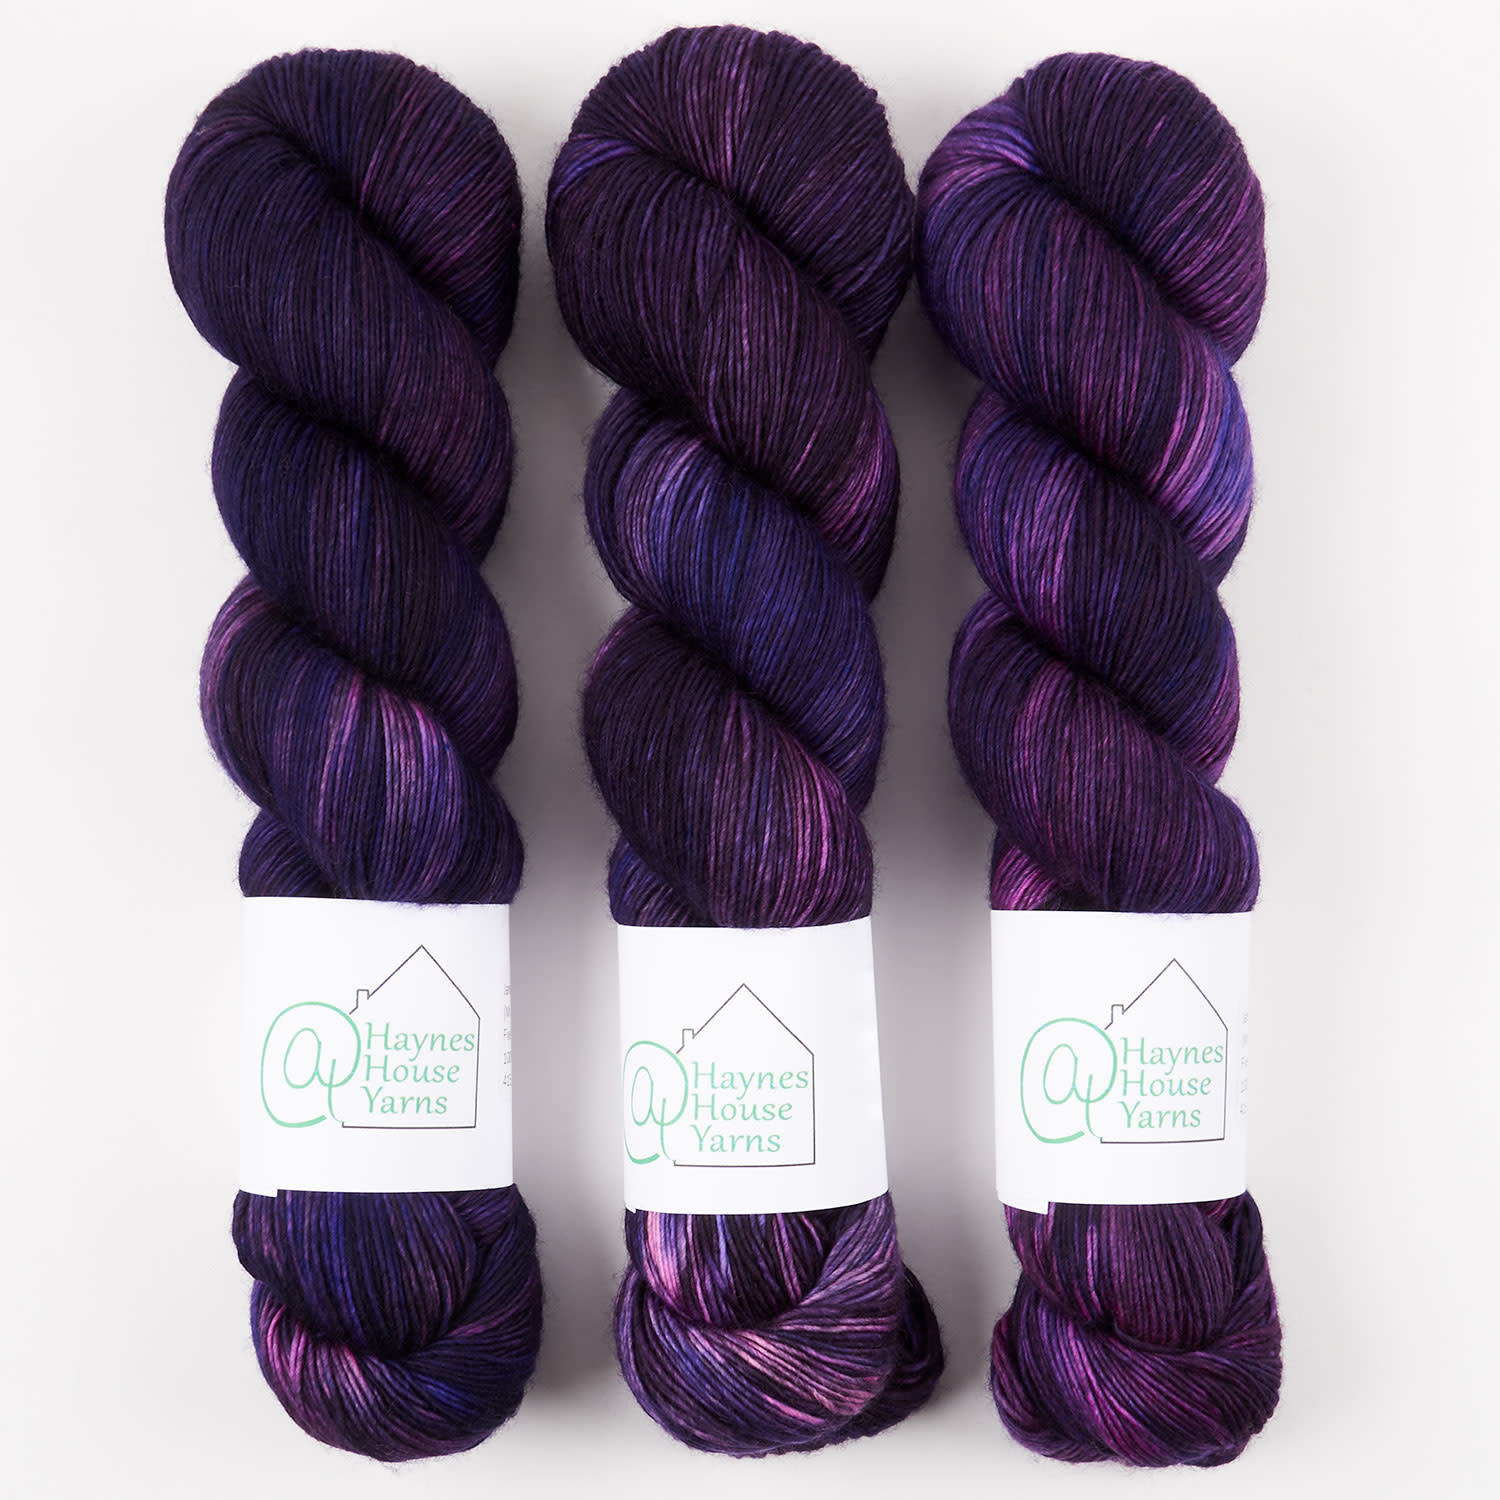 ​AT Haynes House Yarn FIVE DEEP RUSTIC FINGERING - JANE AUSTEN: PERFECTLY AMIABLE (MR. DARCY)